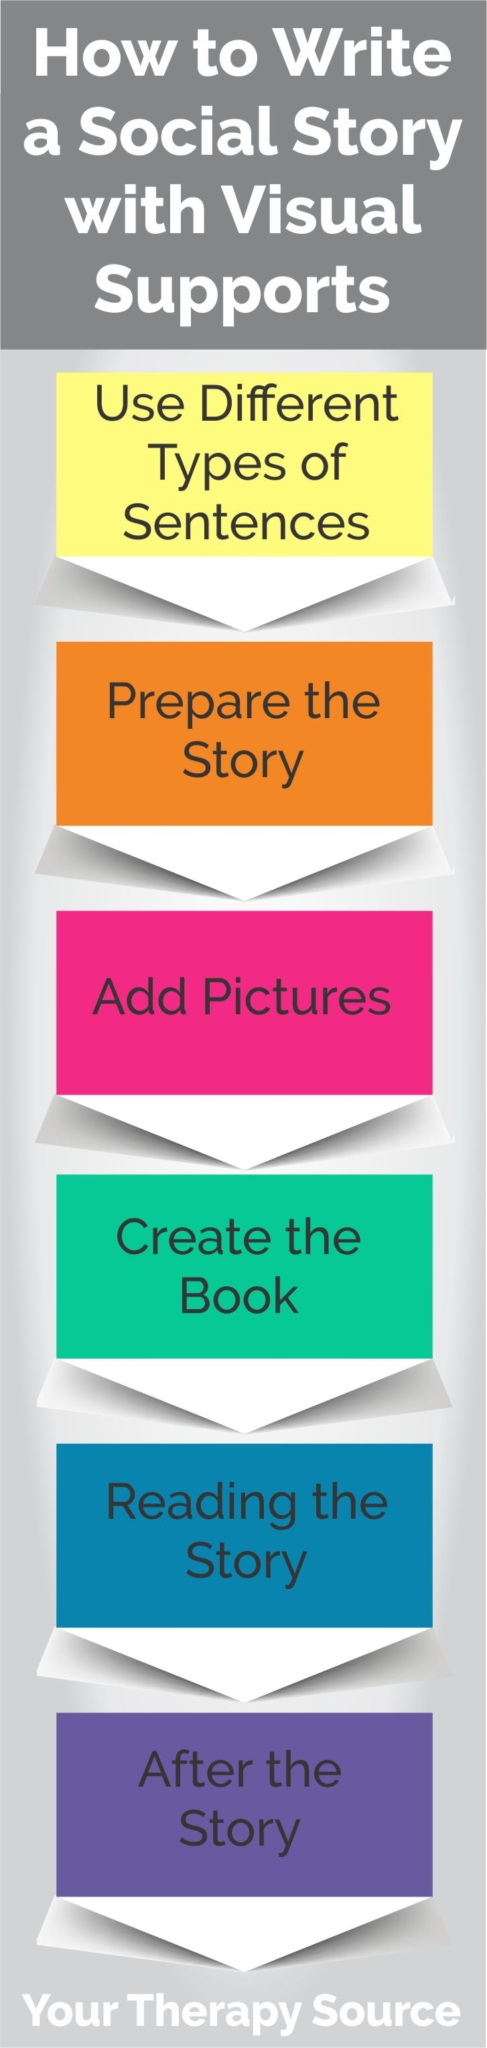 How to Write a Social Story with Visual Supports